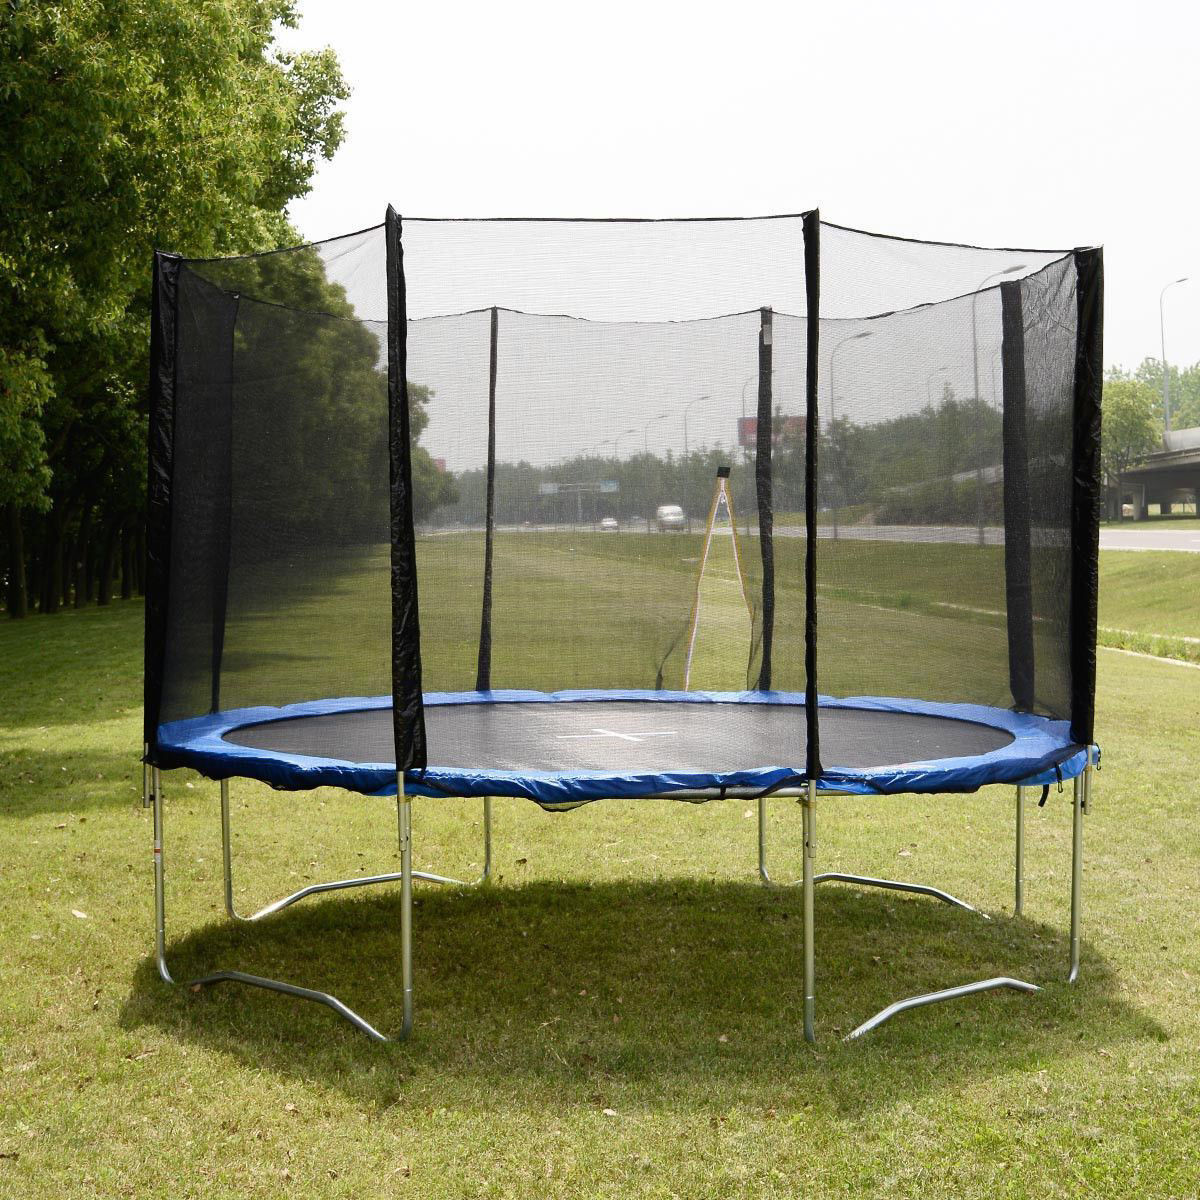 Picture of 14 FT Trampoline Combo Bounce Jump Safety Enclosure Net with Spring Pad Round